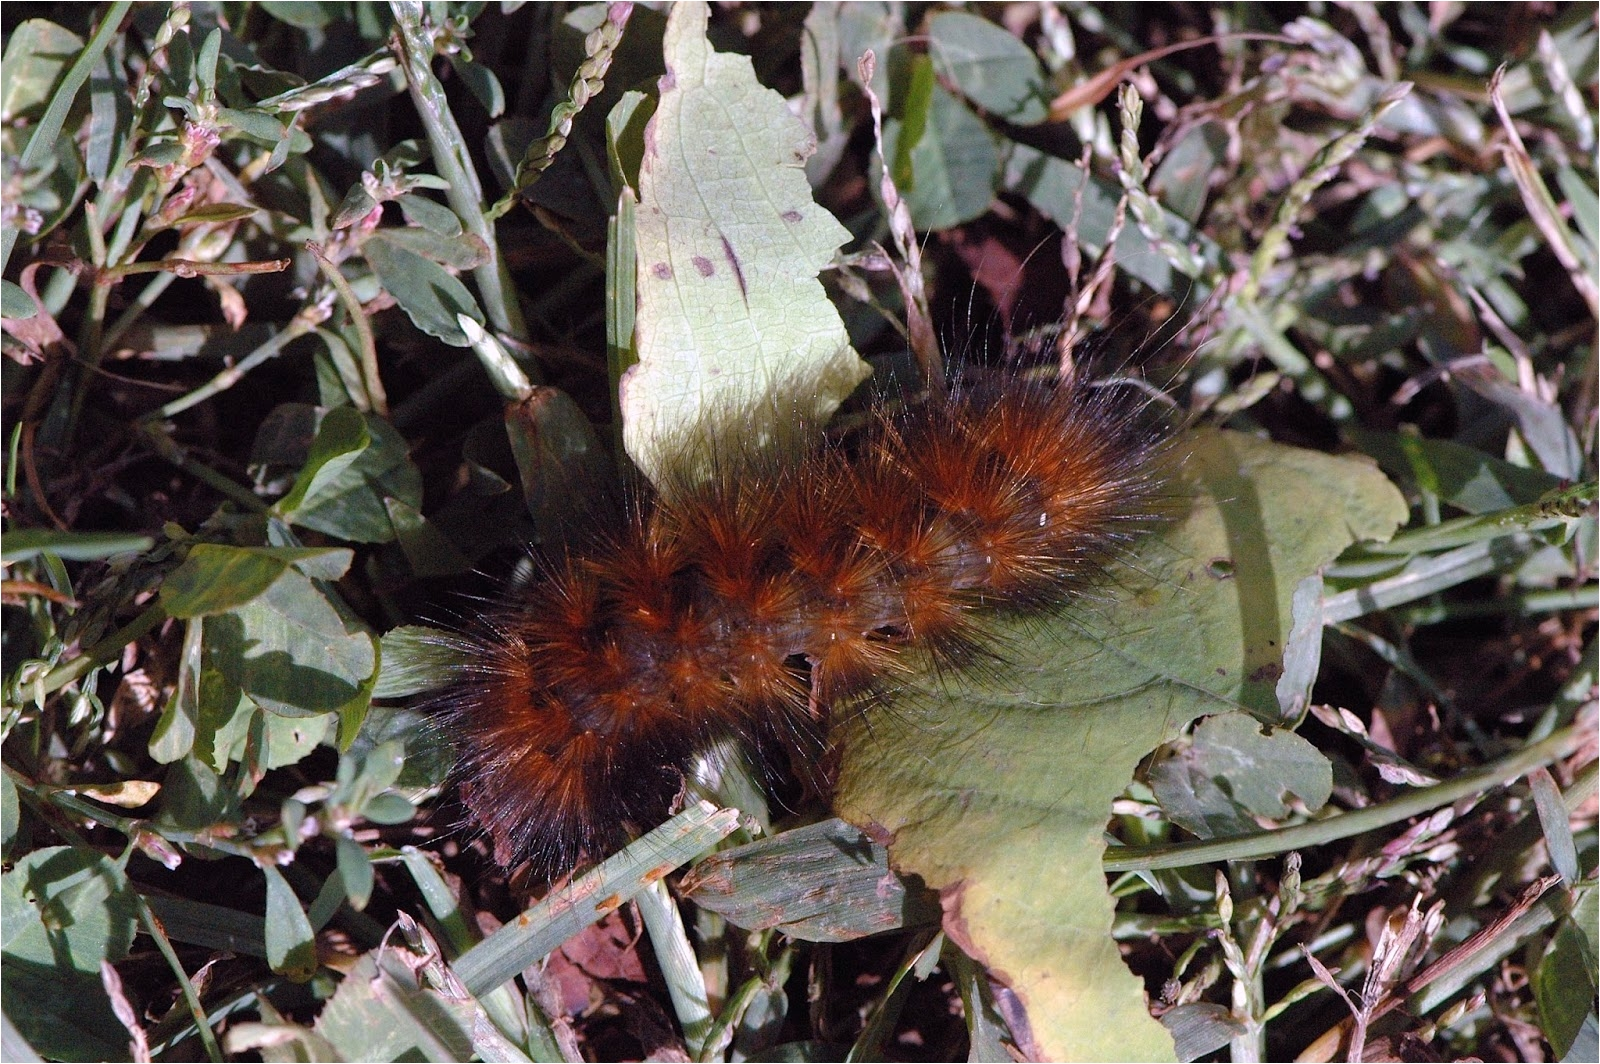 one of the caterpillars i found was spilosoma virginica this species is rusty orange colored often with interspersed black hairs